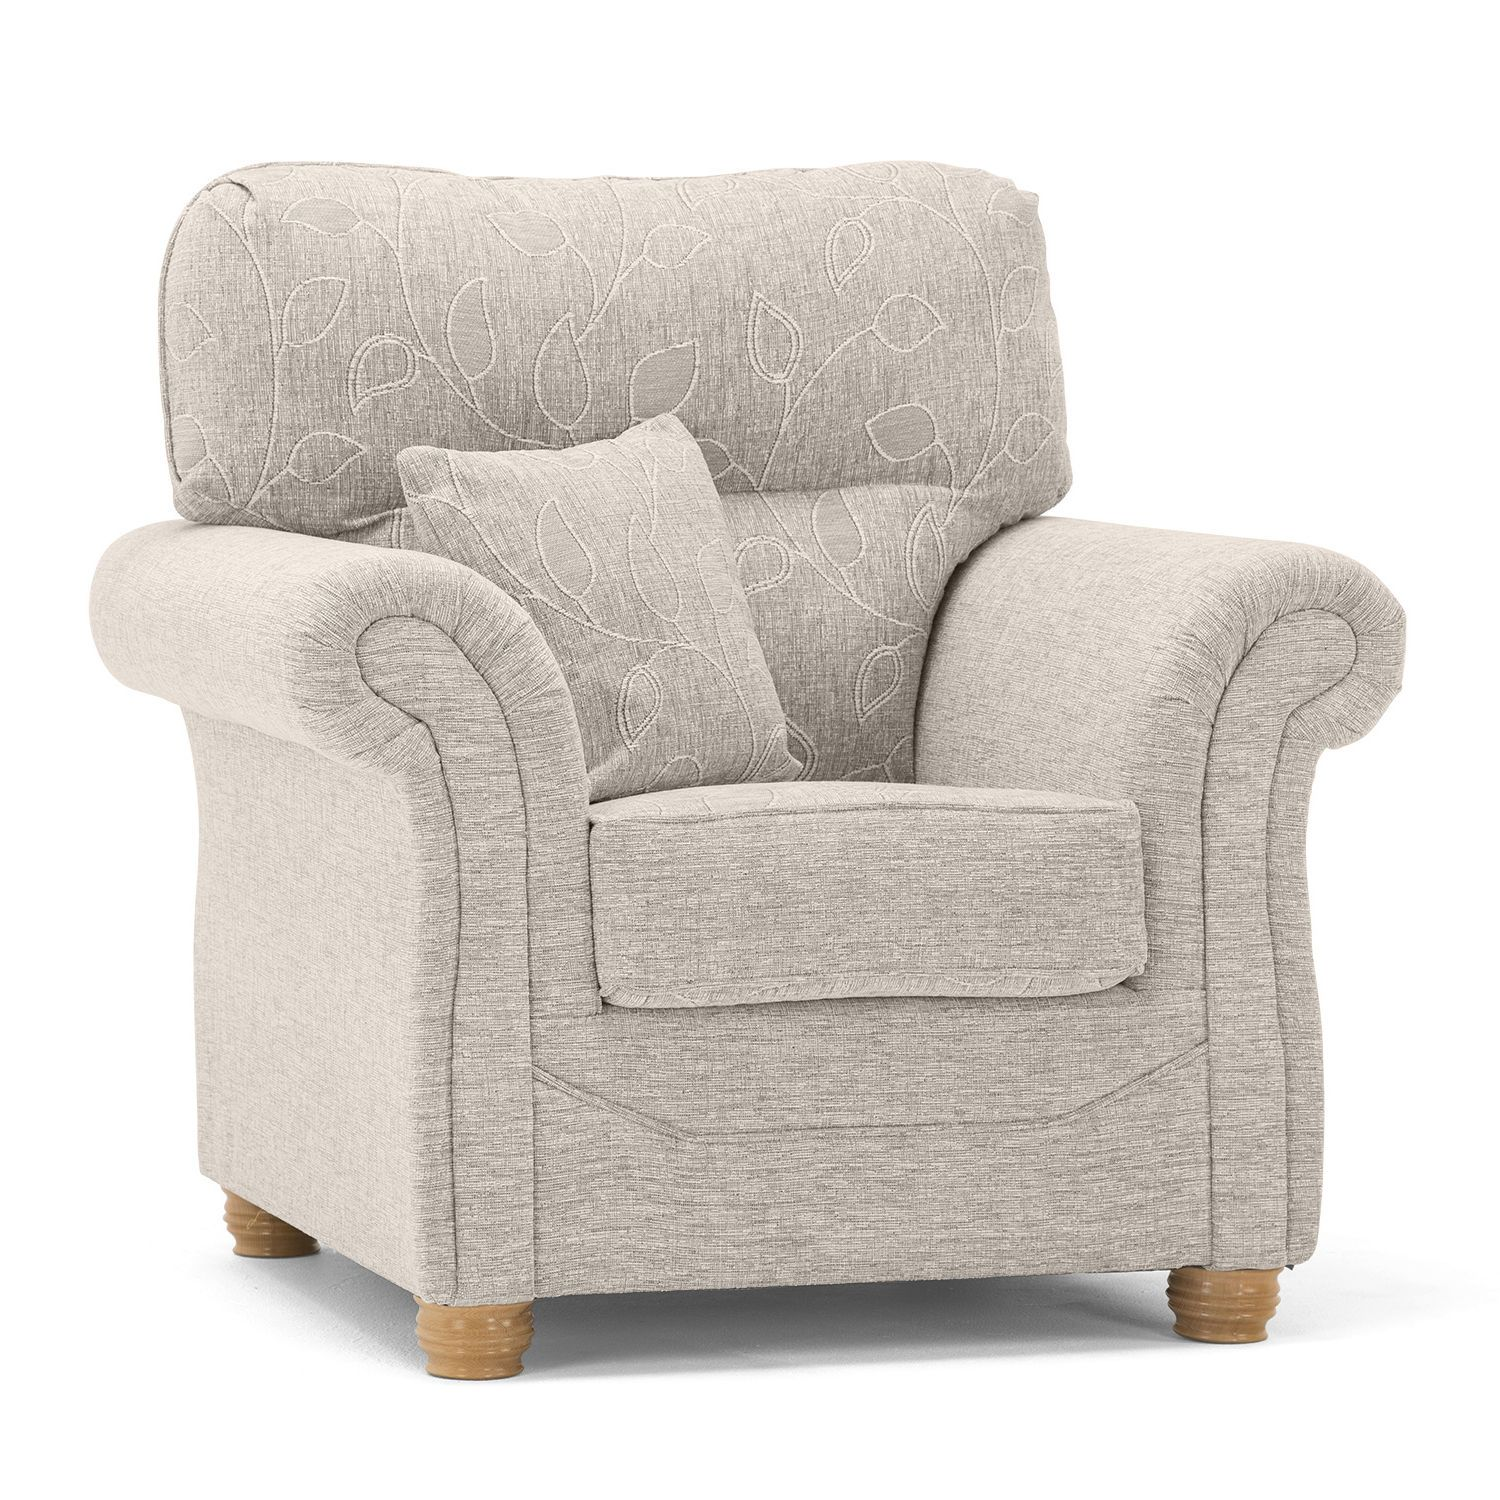 uk armchairs | armchairs for sale | armchairs cheap ...